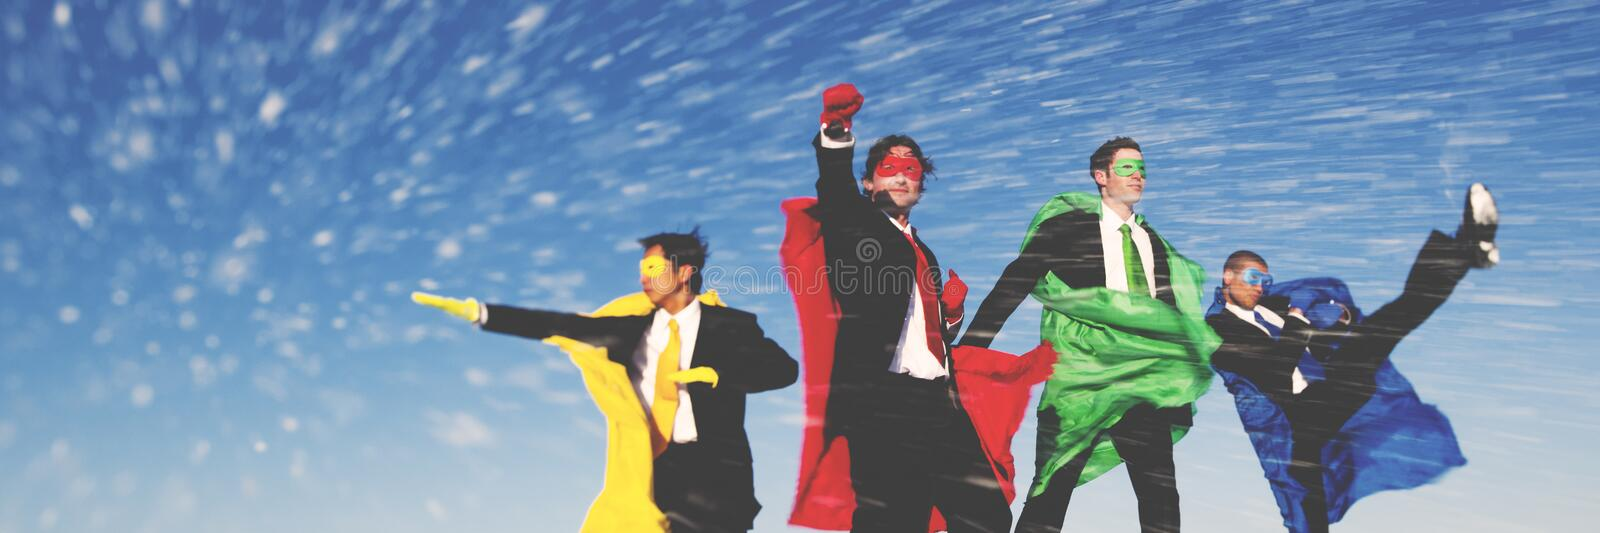 Download Business Superheroes Winter Snow Rescue Concept Stock Photo - Image: 66005660